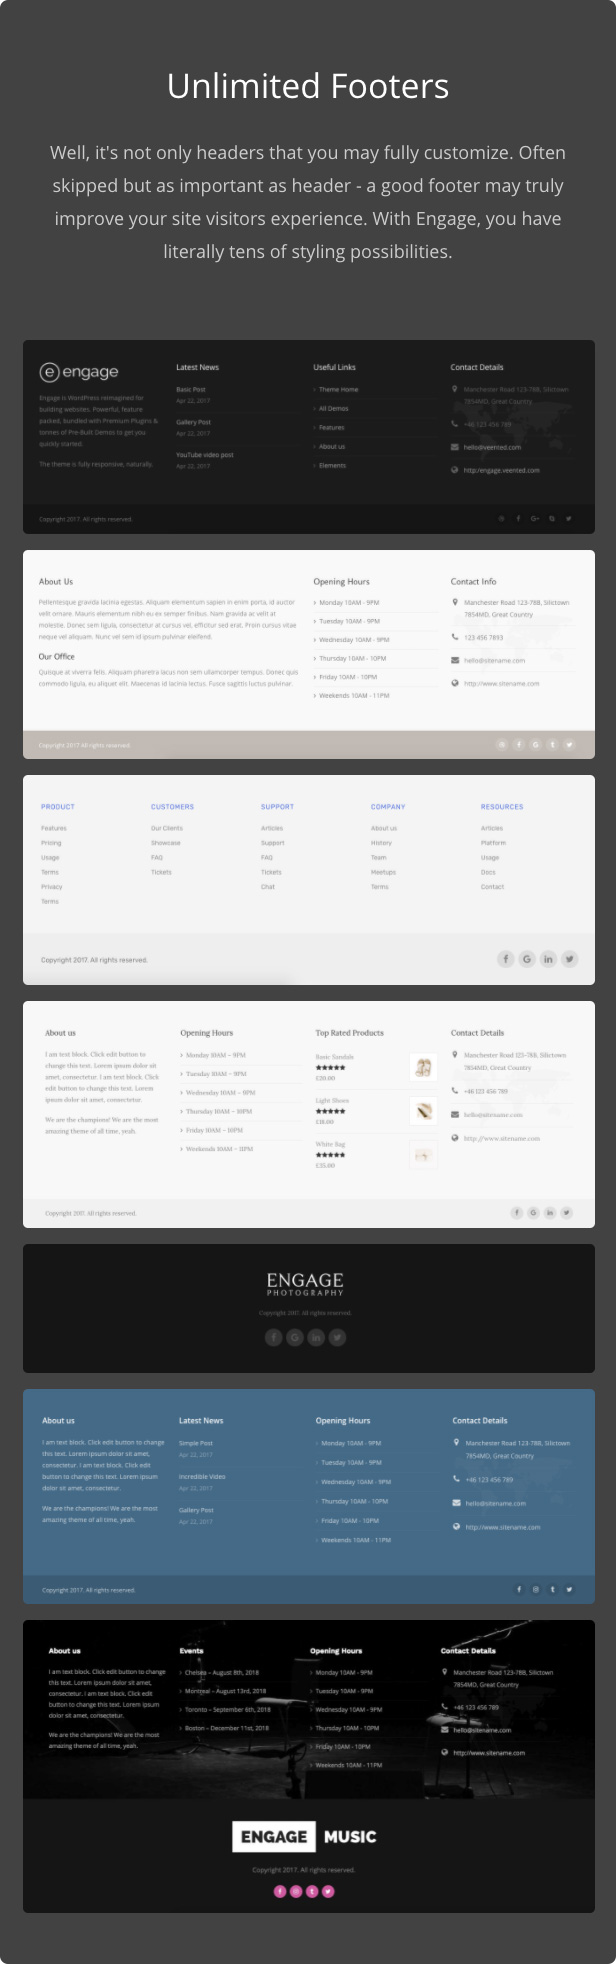 Engage - Responsive Multipurpose WordPress Theme - 18